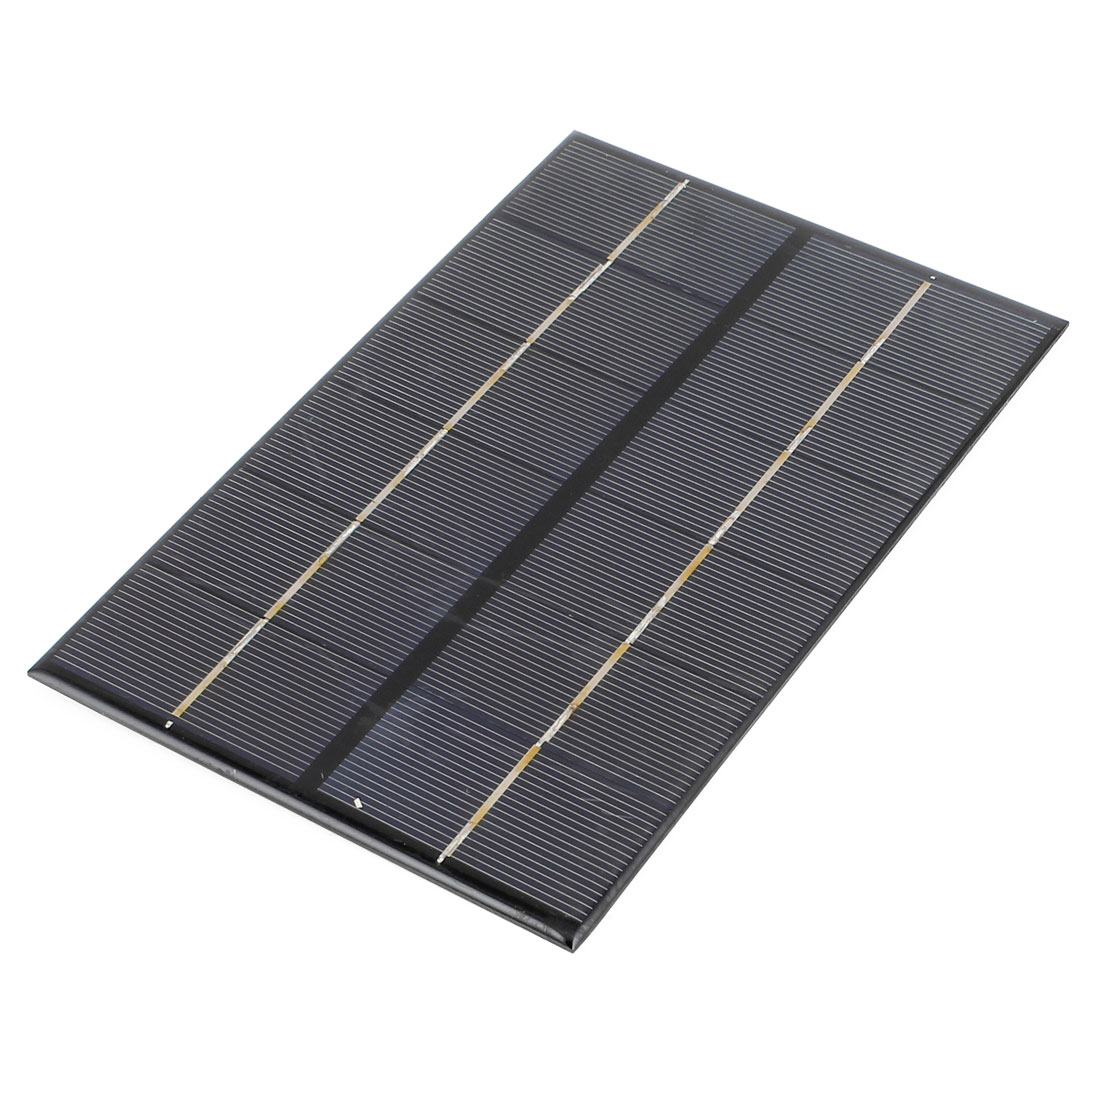 6V 4.2W DIY Polycrystallinesilicon Solar Panel Power Cell Battery Charger 200mm x 130mm